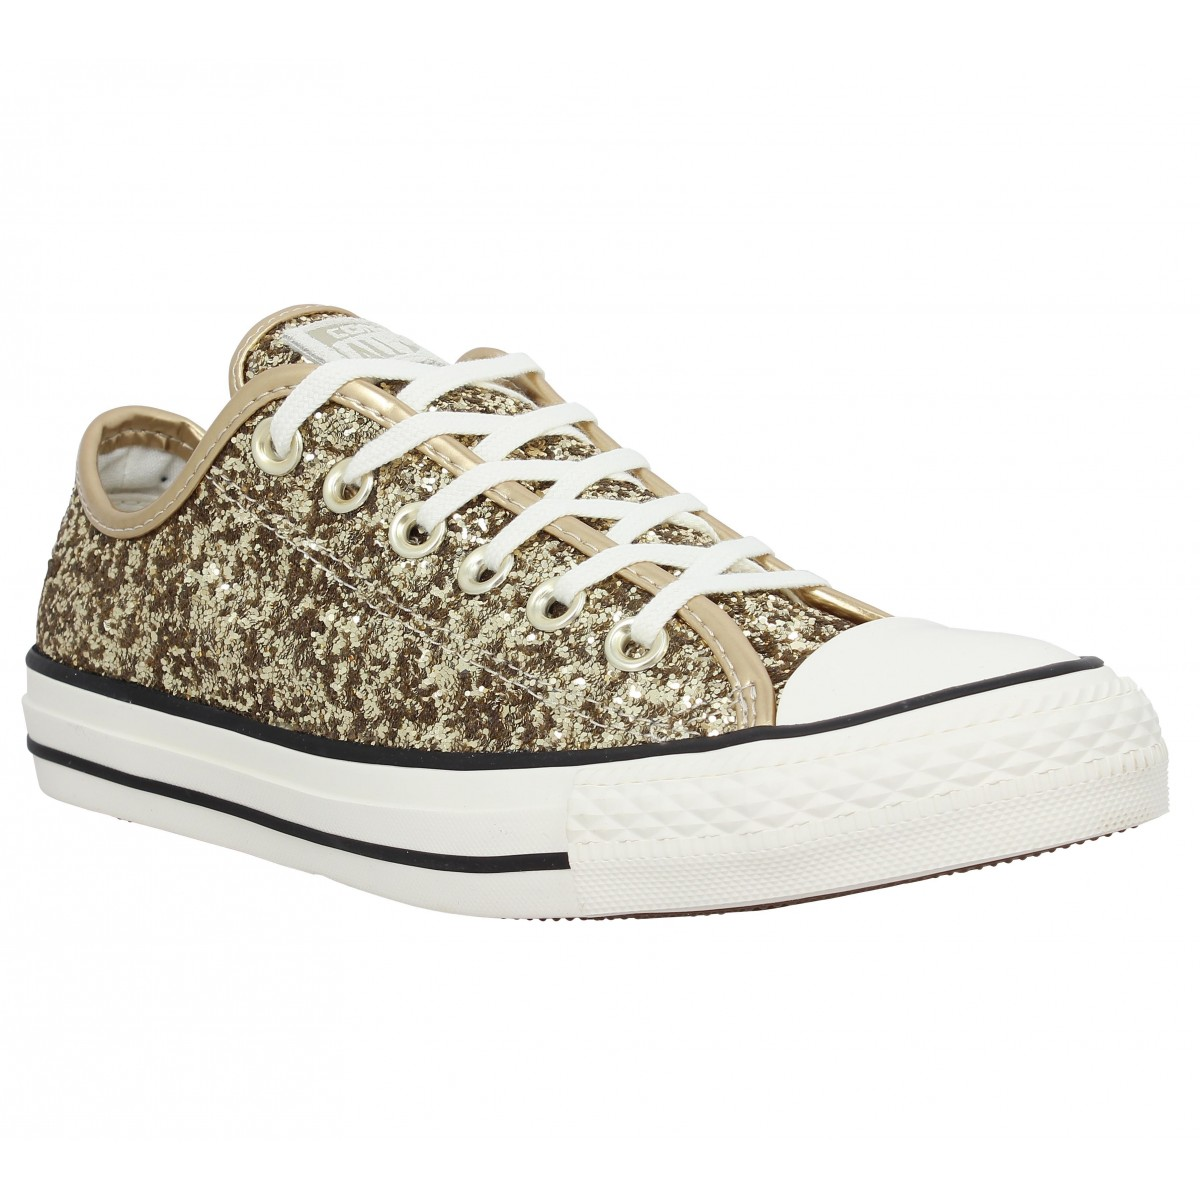 376adab5856 Baskets CONVERSE Chuck Taylor All Star paillettes Femme Gold